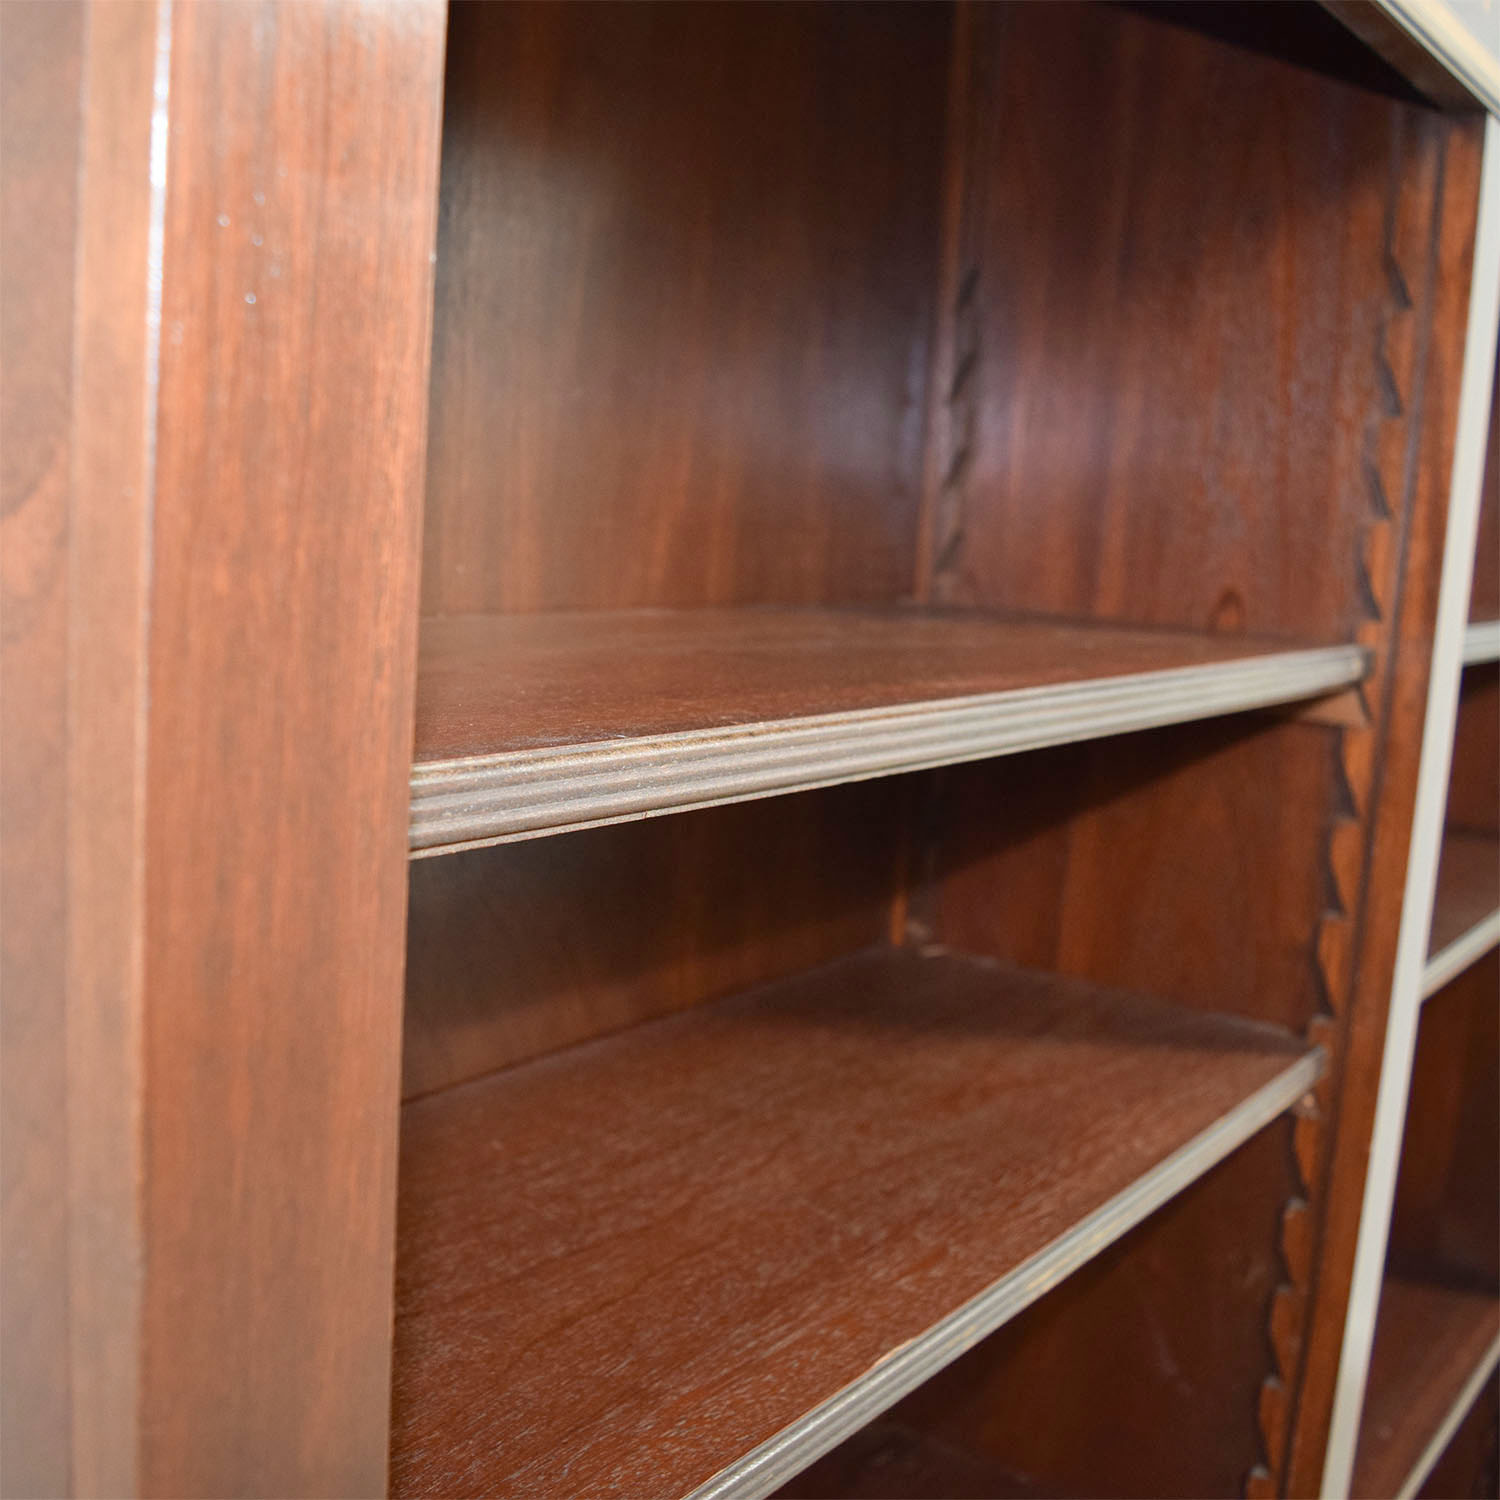 ... Antique Cherry Bookshelf with Dentil Moulding dimensions ... - 75% OFF - Antique Cherry Bookshelf With Dentil Moulding / Storage